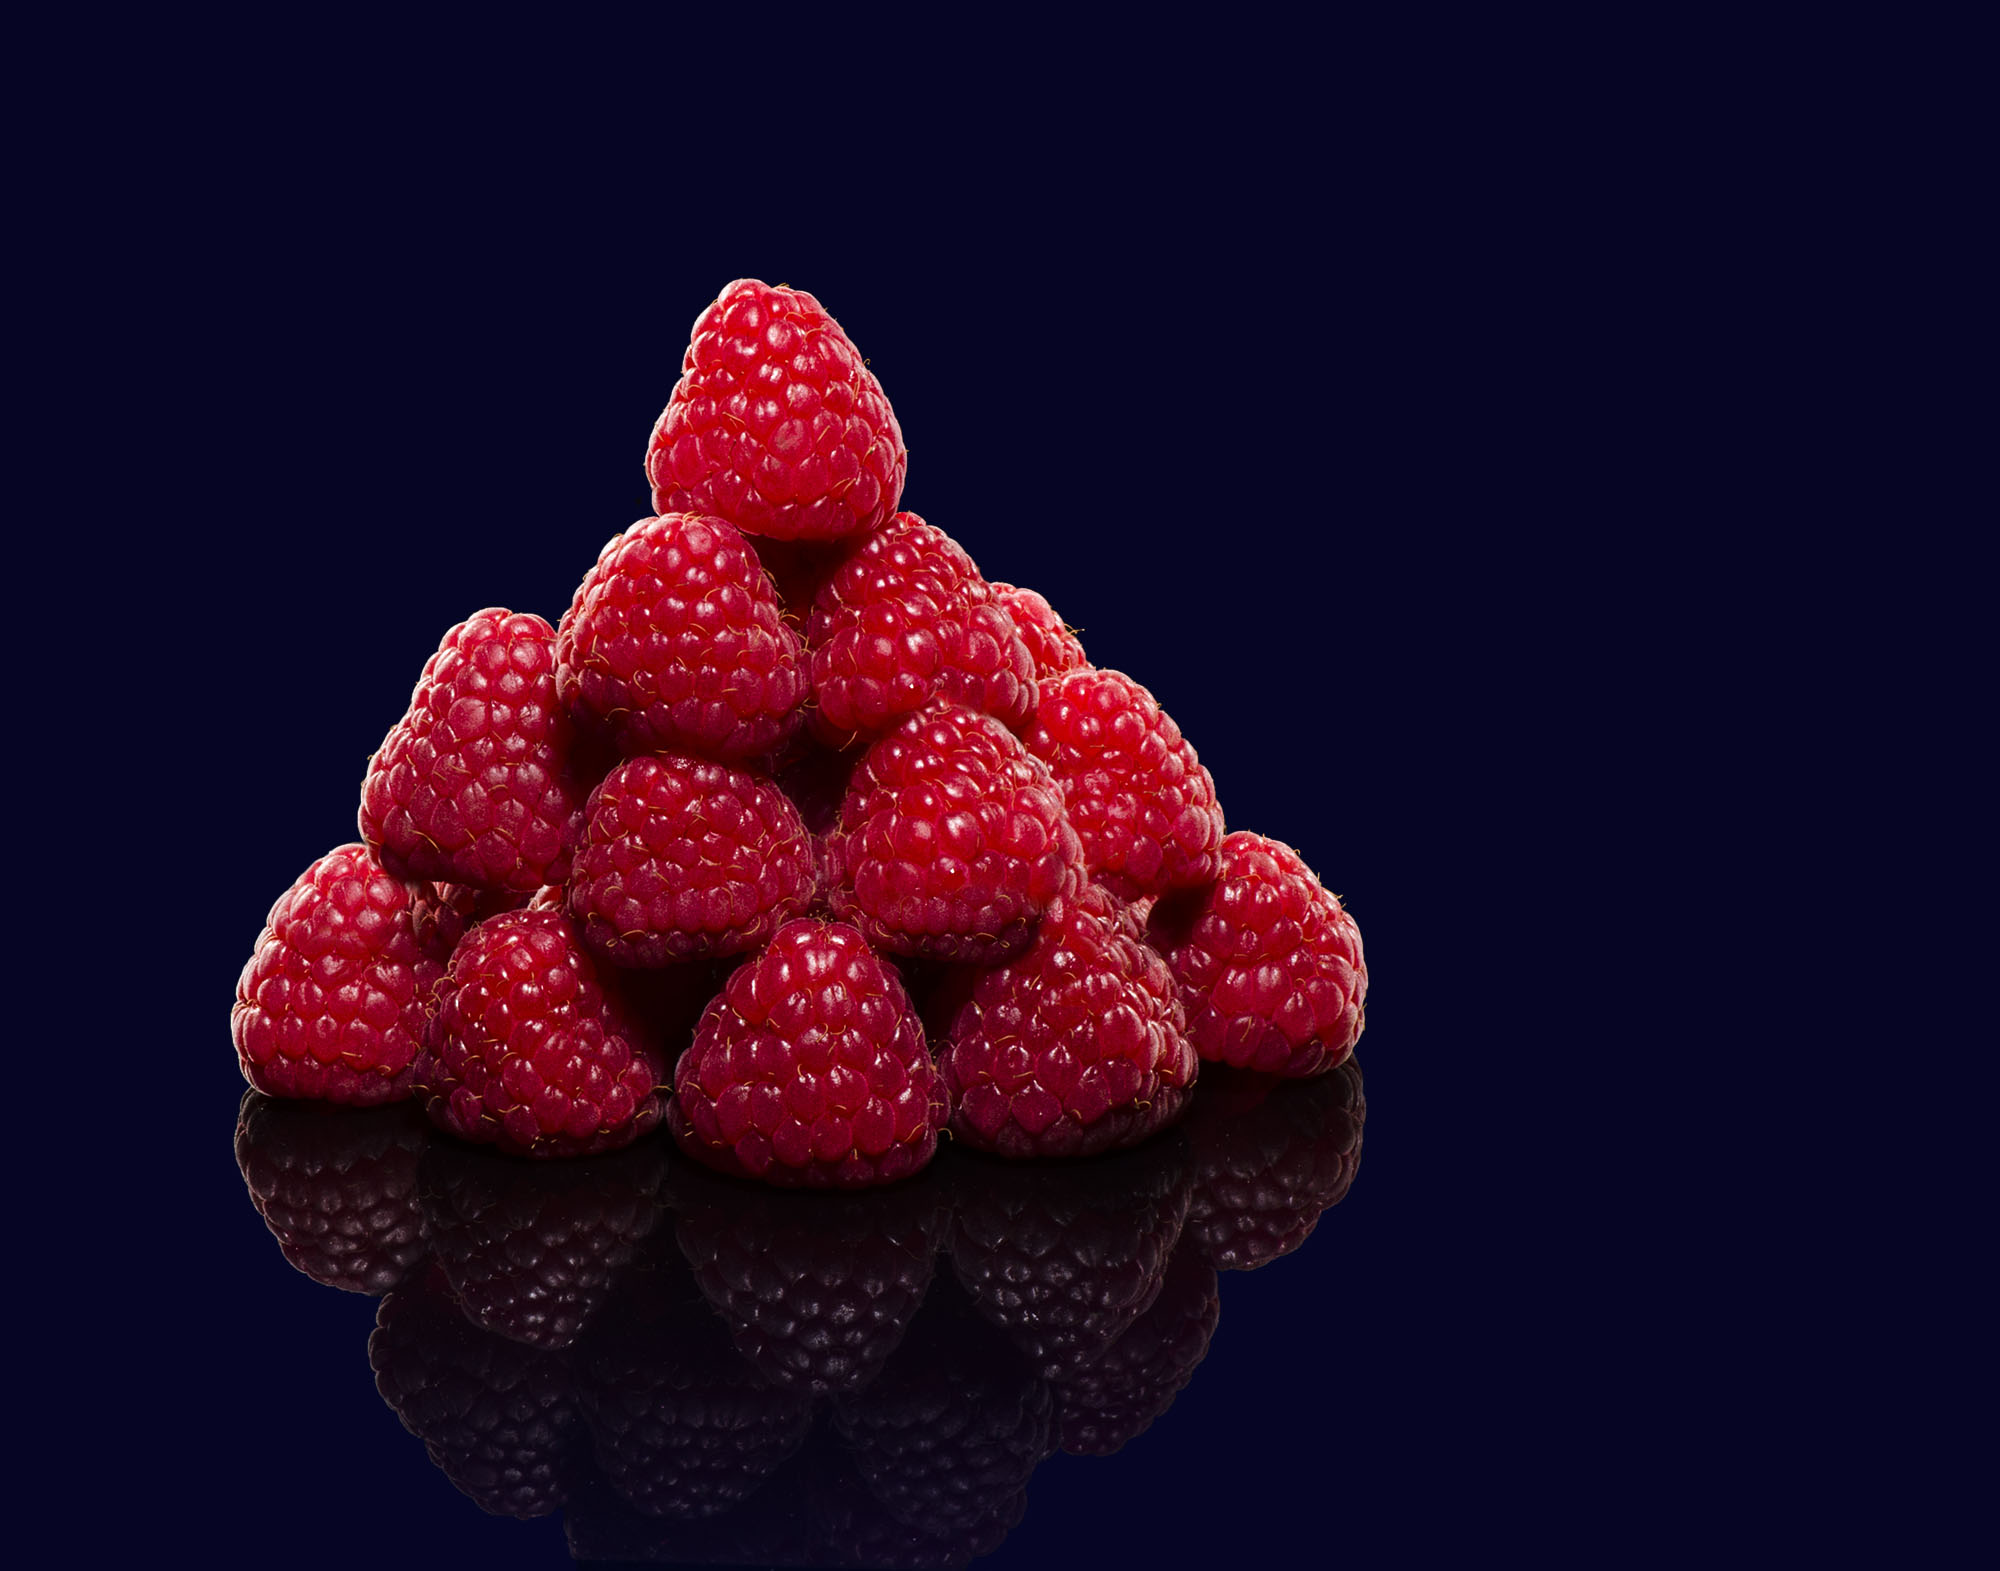 Ian Knaggs Commercial Still Life Photographer - Raspberries